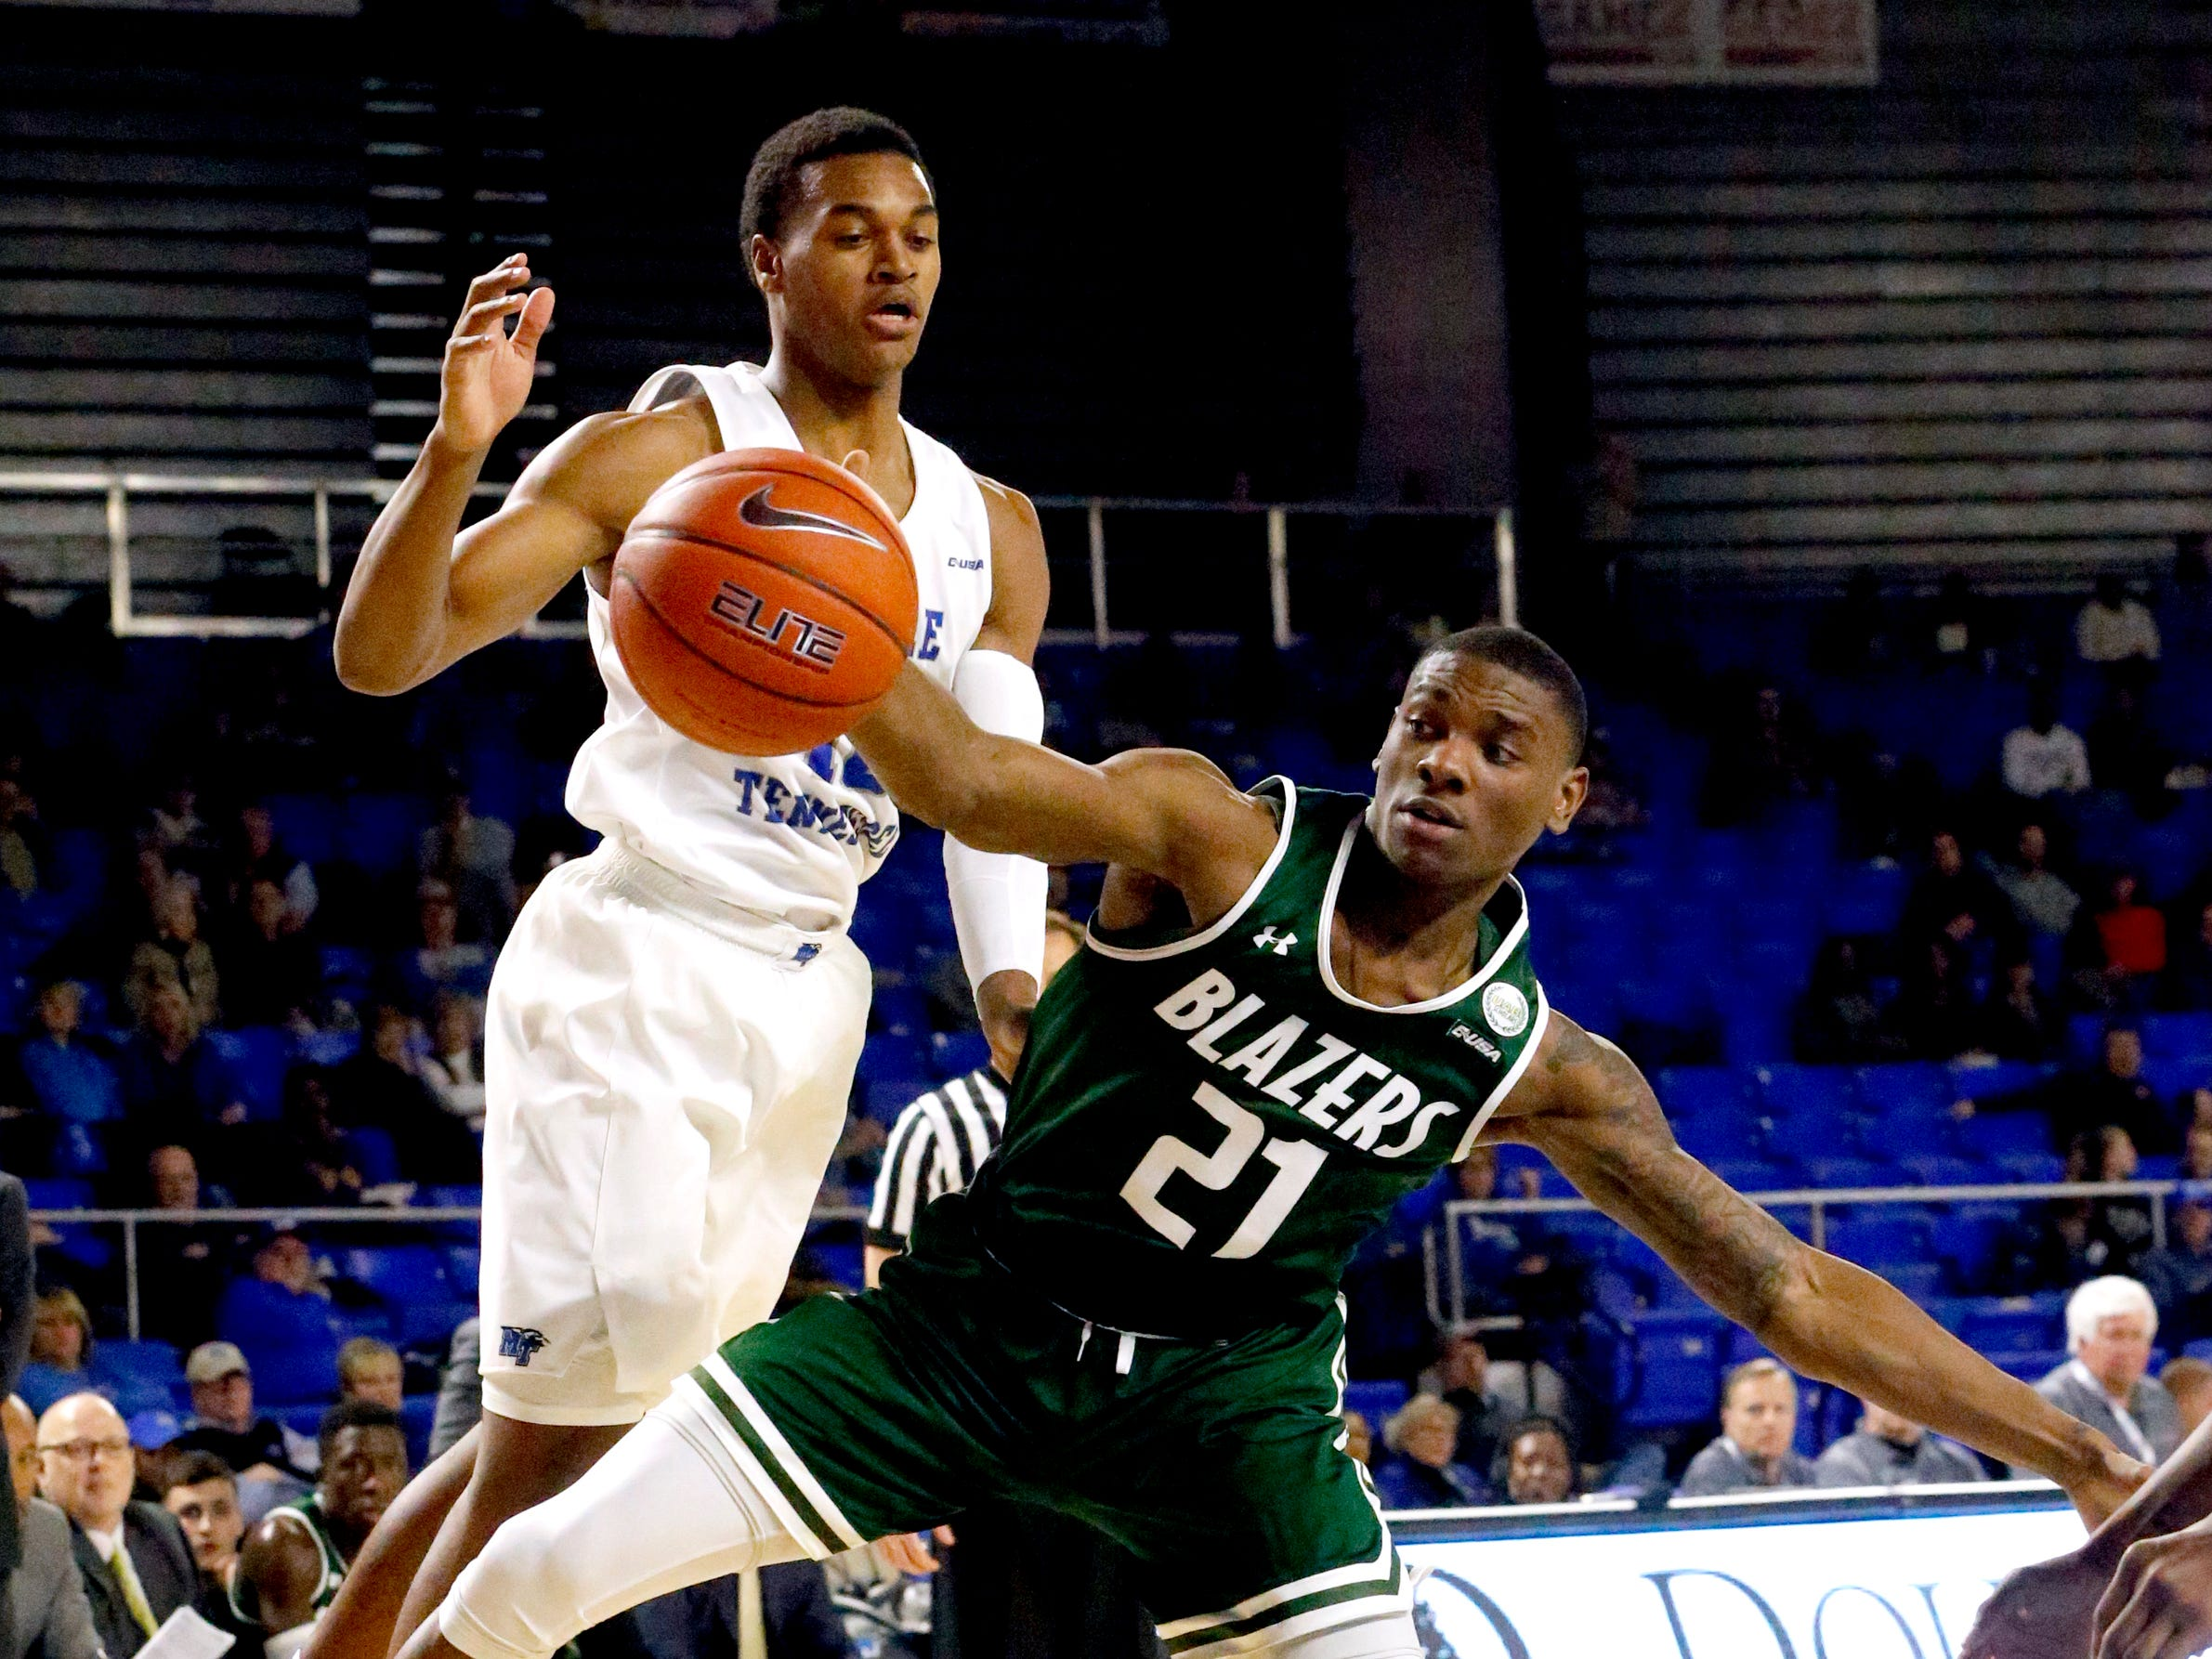 MTSU guard Jayce Johnson (10) and UAB's guard Jalen Perry (21) both go after a rebound on Wednesday Jan. 30, 2019.